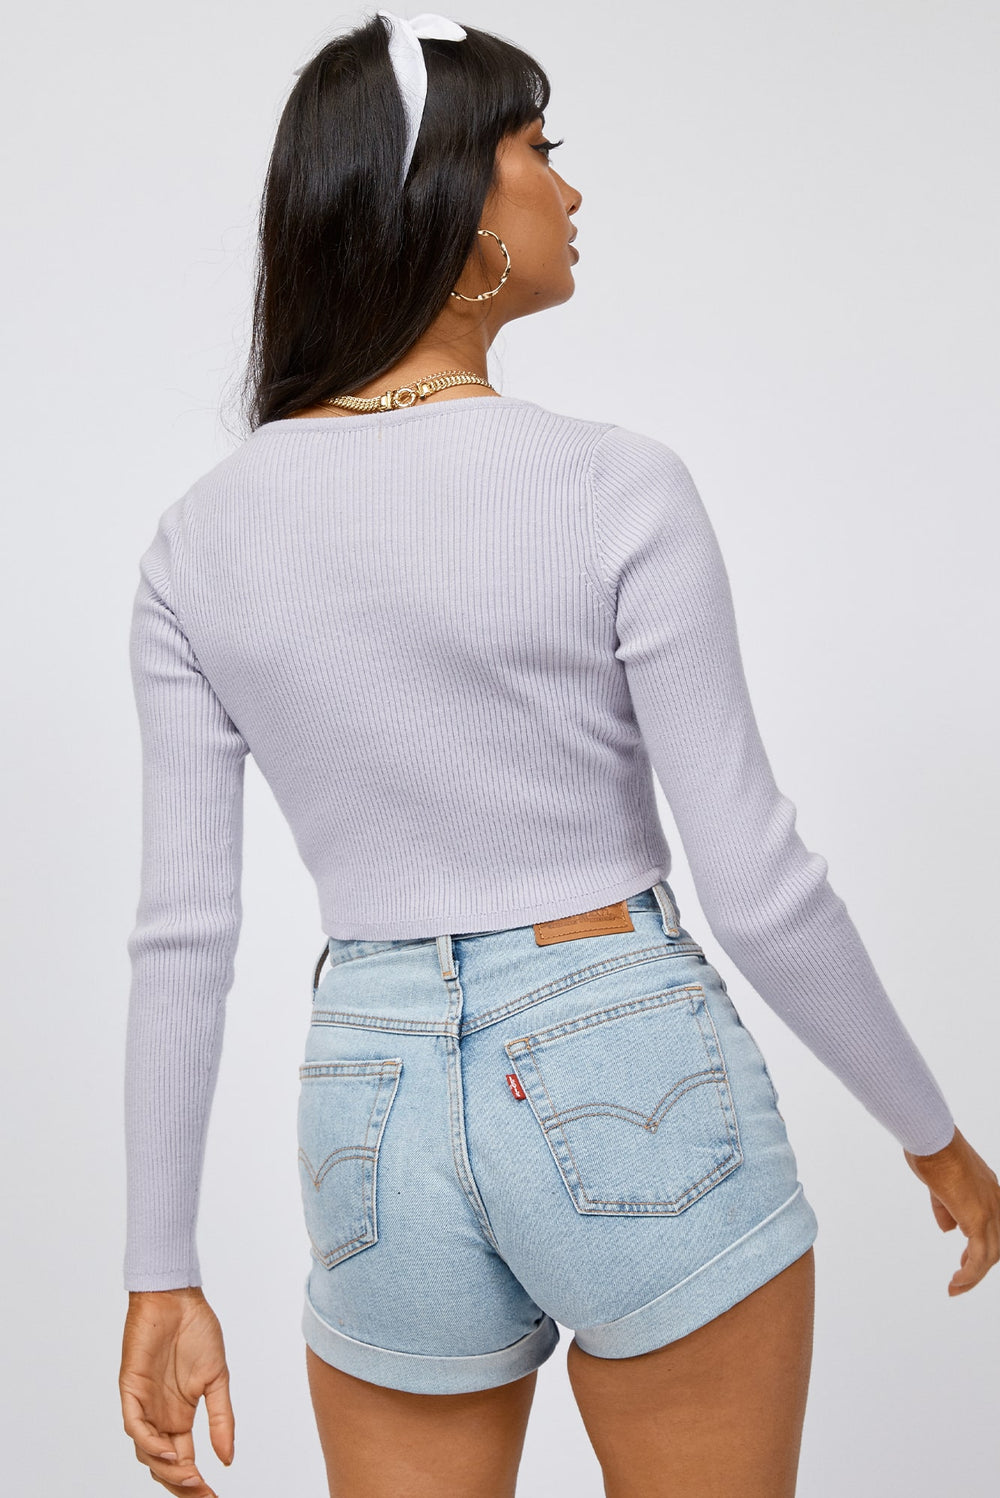 button up crop top, long sleeve crop top, knit crop top